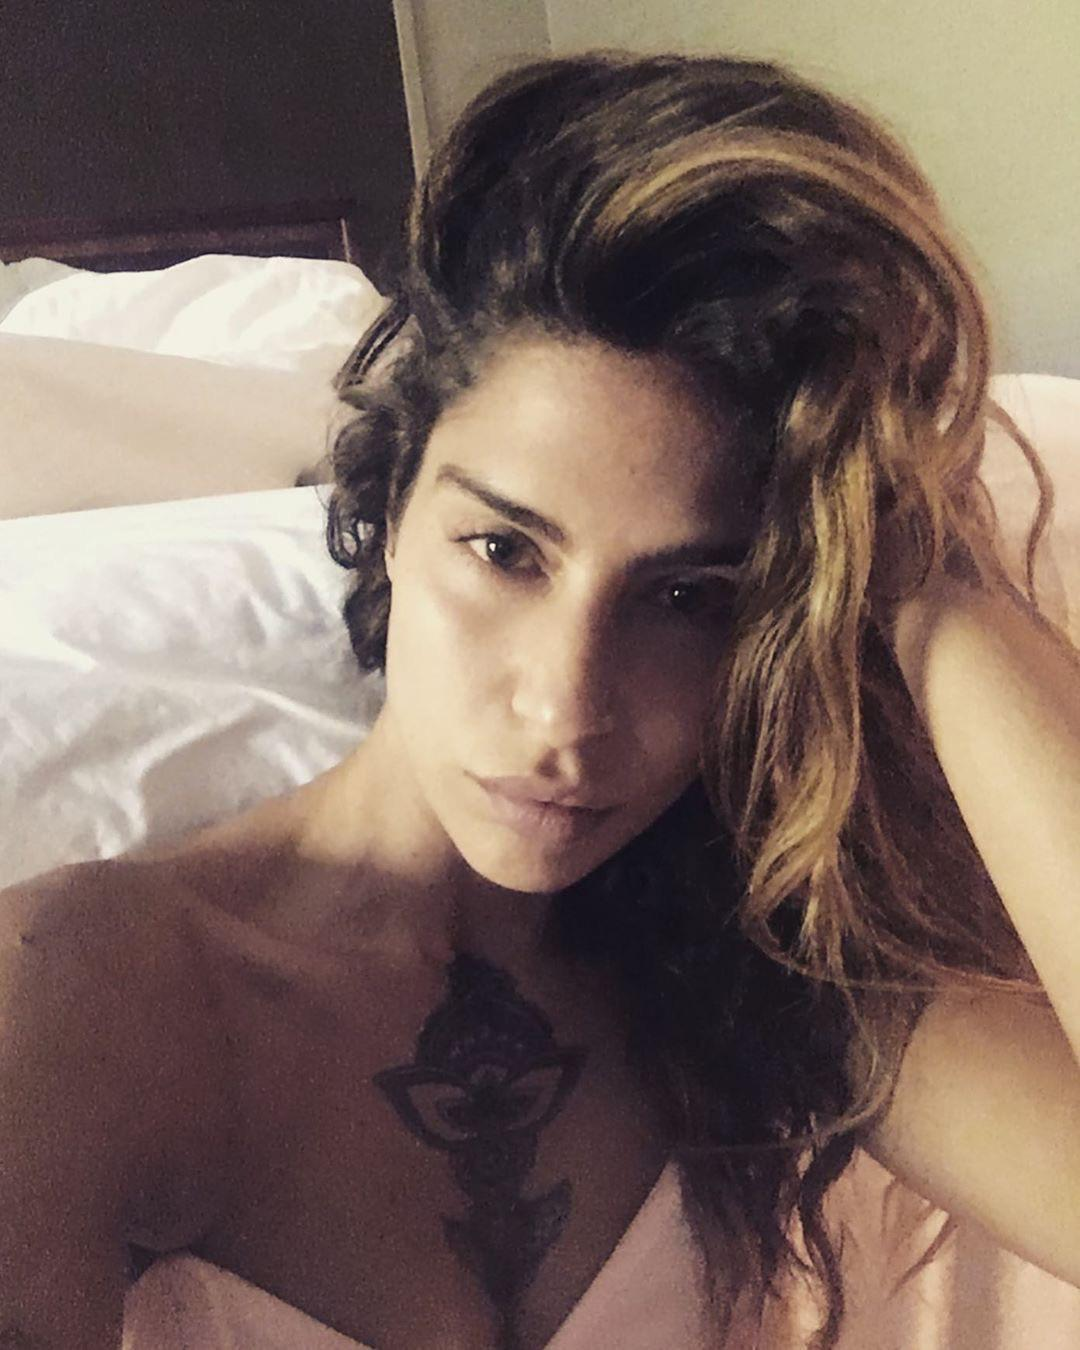 Nadia Hilker Phone number, Email Id, Fanmail, Instagram, Tiktok, and Contact Details